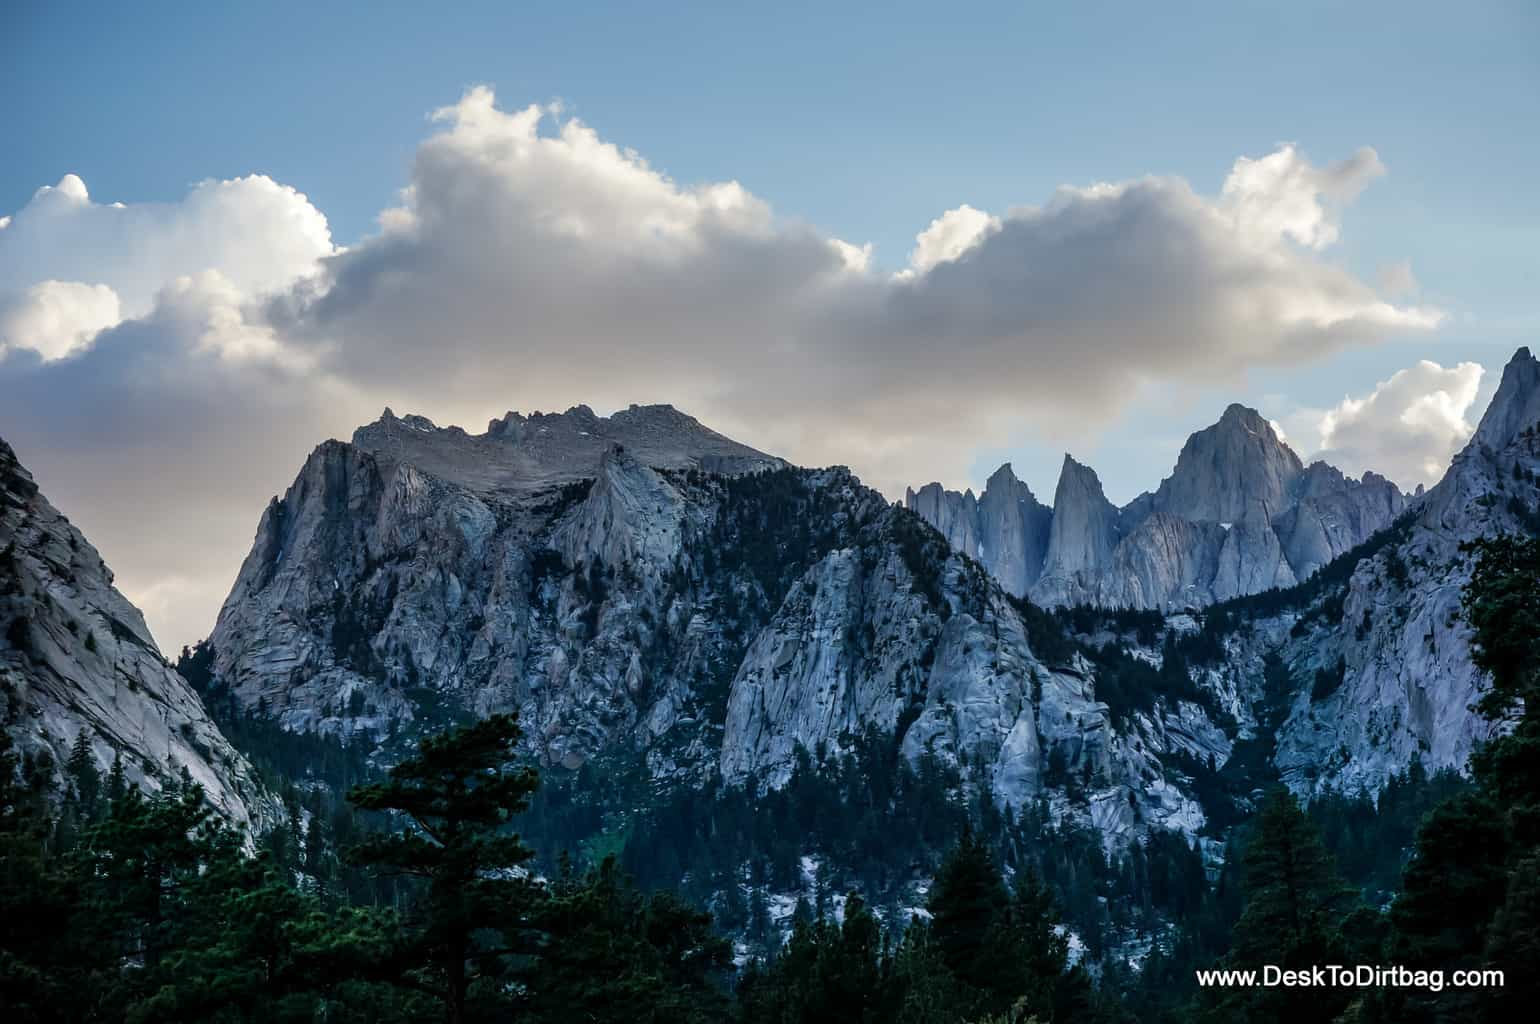 Mount Whitney, the highest peak in the Lower 48, California.